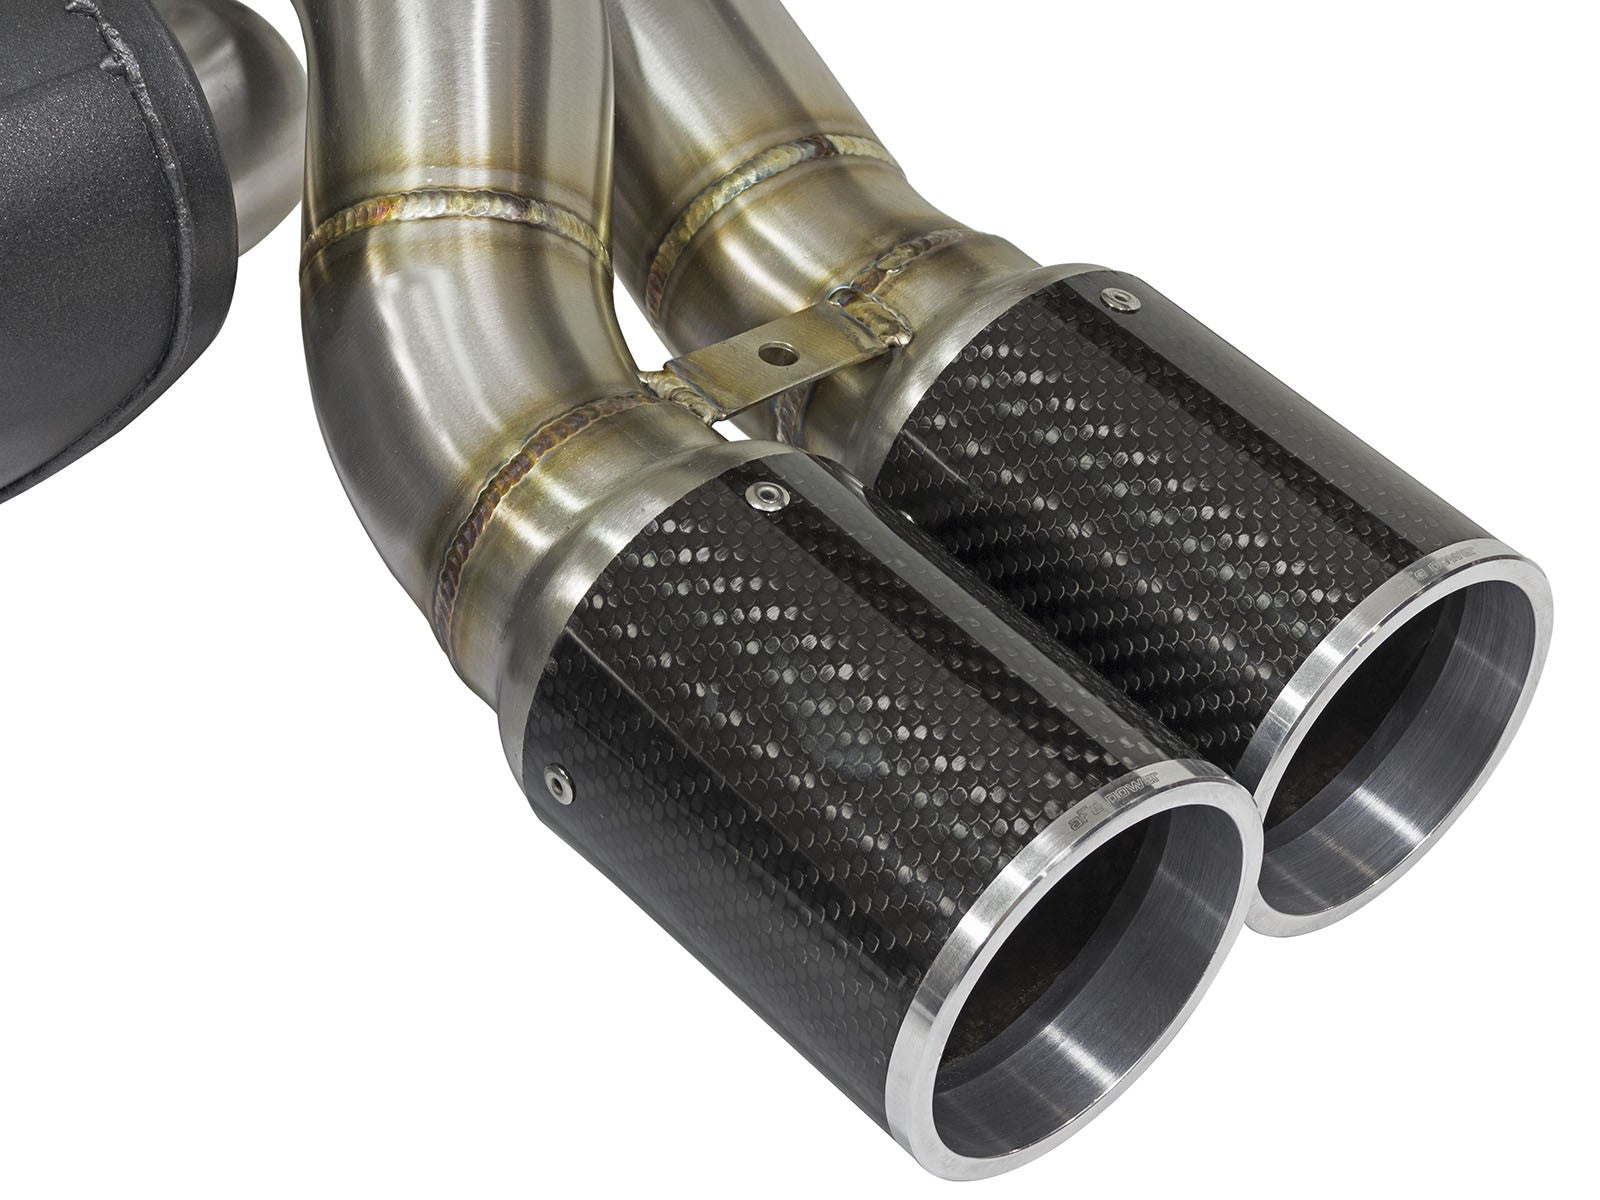 aFe POWER M3/M4 (F80/82) 15-16 L6-3.0L (tt) DOWNPIPE BACK S55 MACH Force-Xp Exhaust System - Bimmer Performance Center